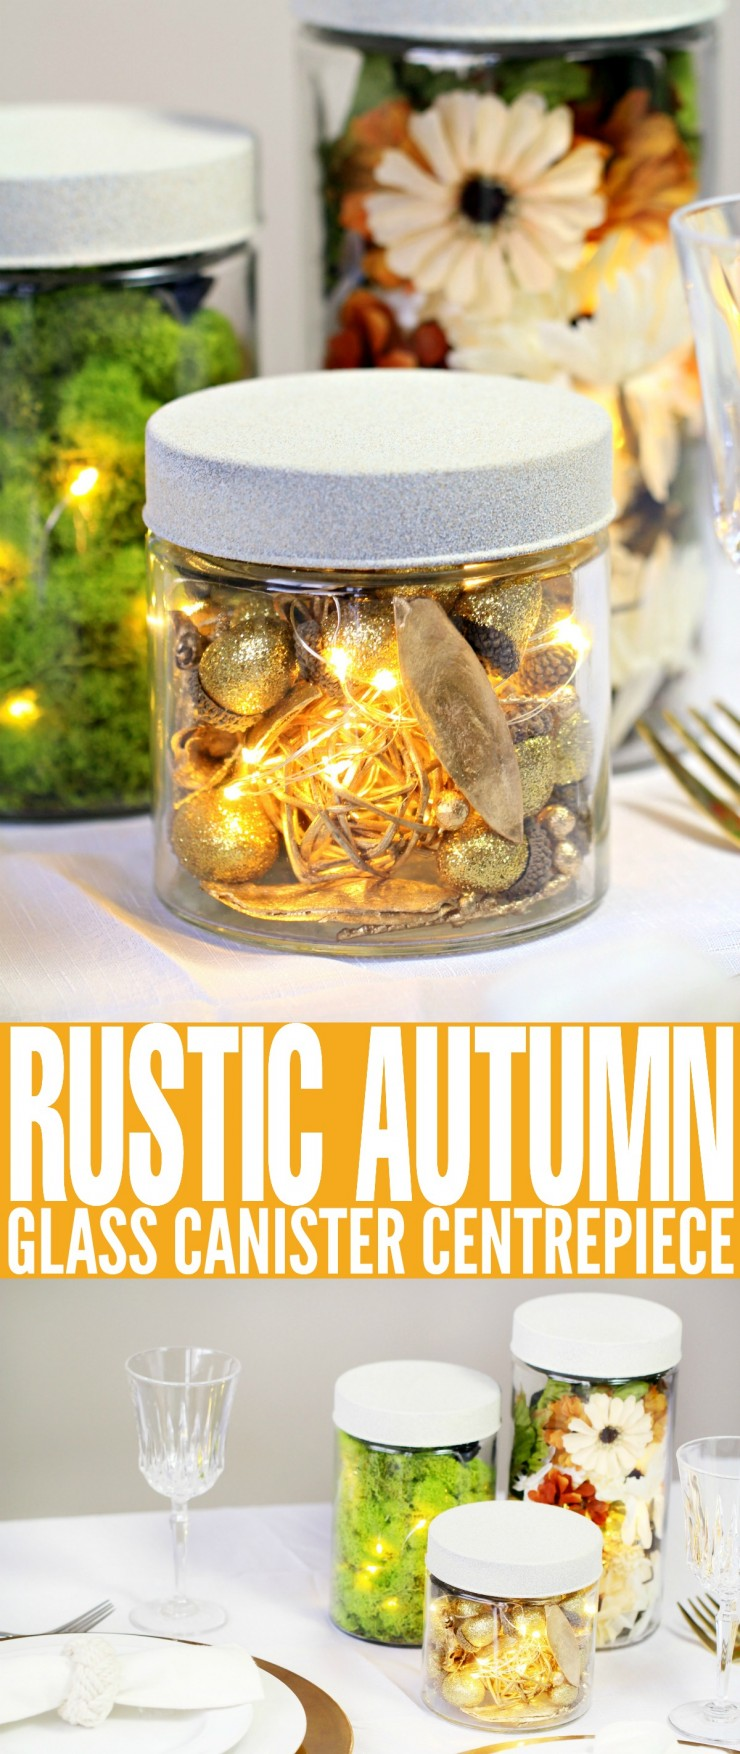 If you're planning on holding a dinner party this autumn then this Rustic Autumn Glass Canister Centrepiece is the perfect way to embrace the changing seasons and celebrate the natural beauty of fall.